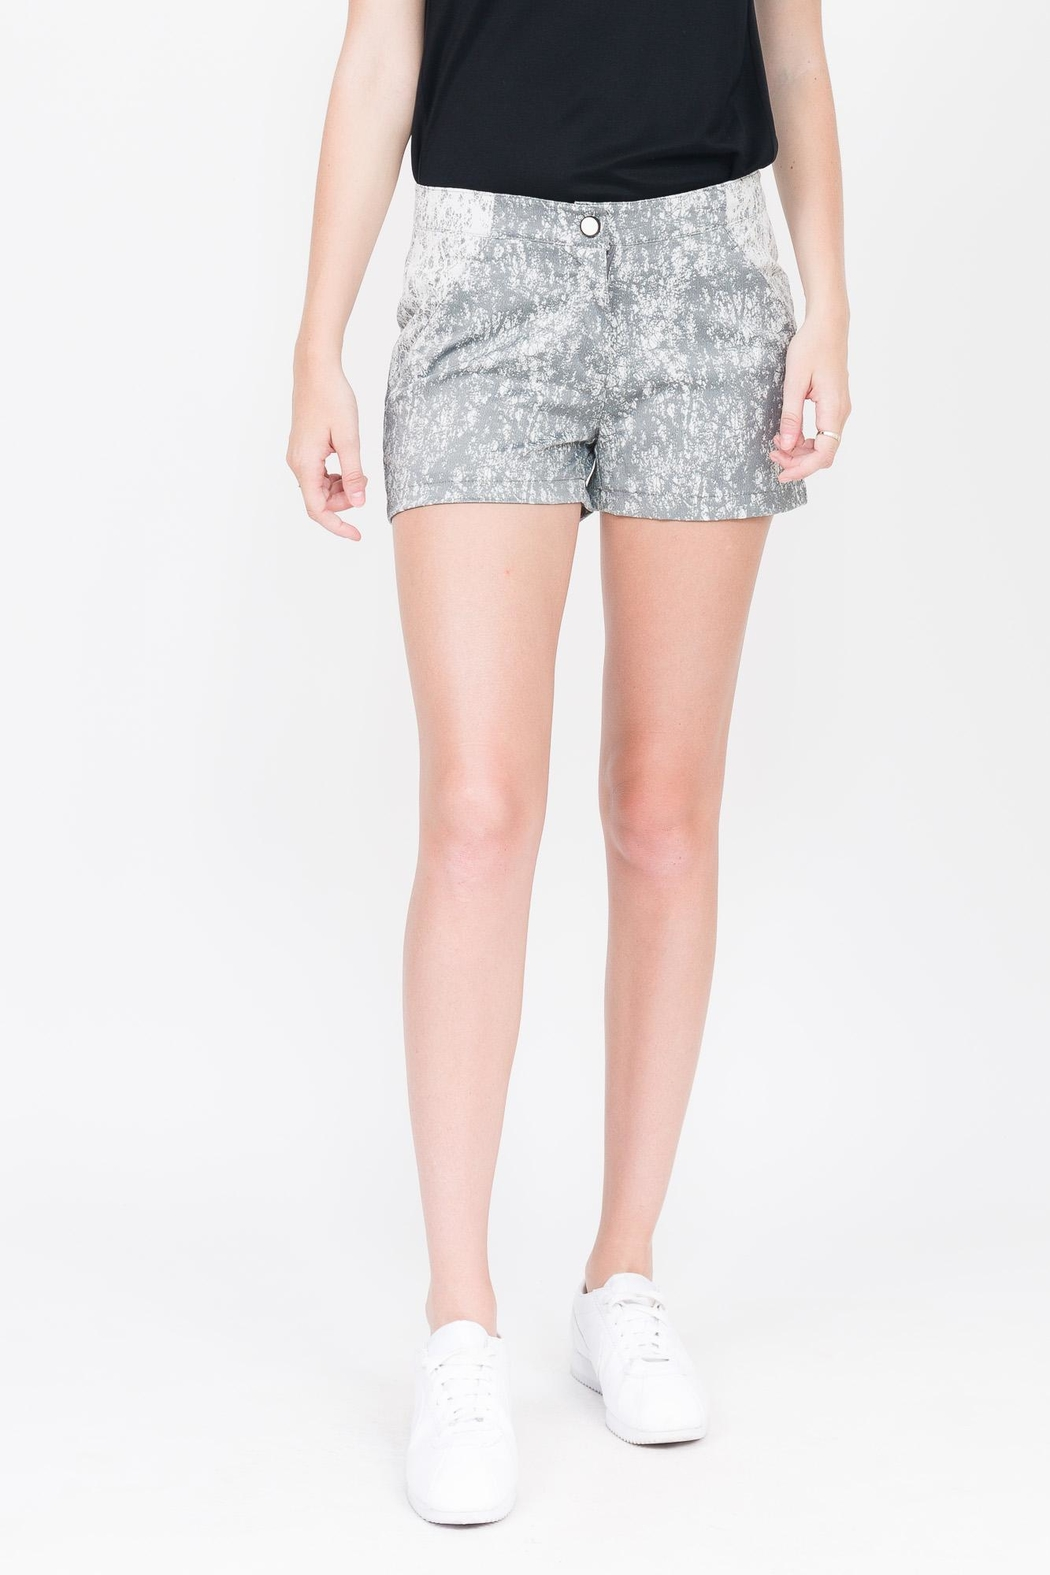 QUINN Jade Paneled Short - Front Cropped Image